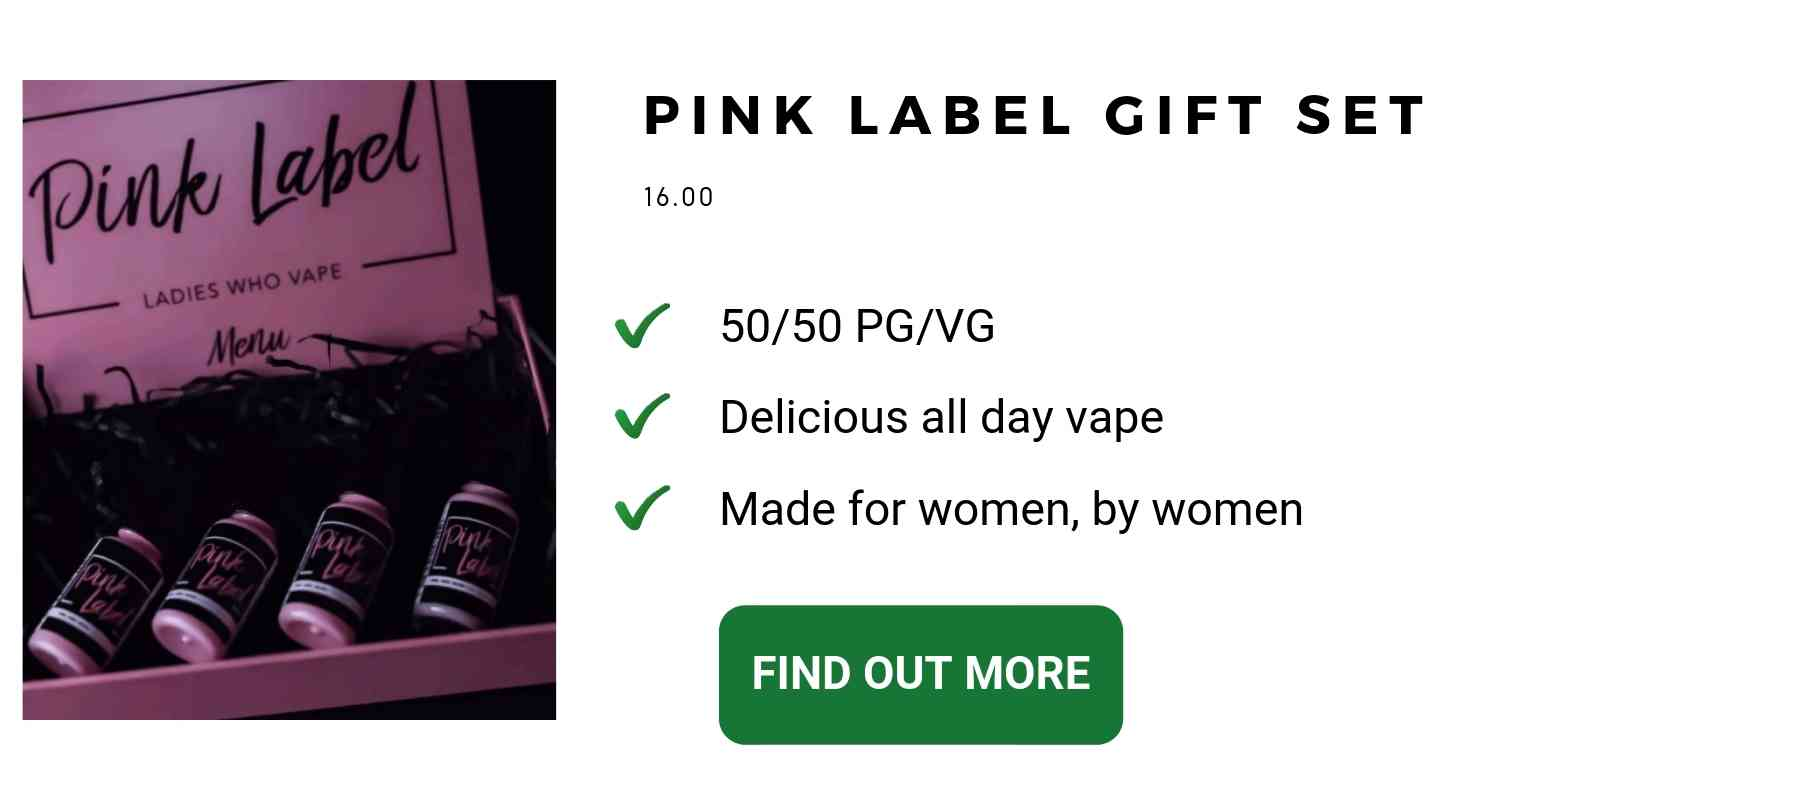 pink label vape juice gifts for women